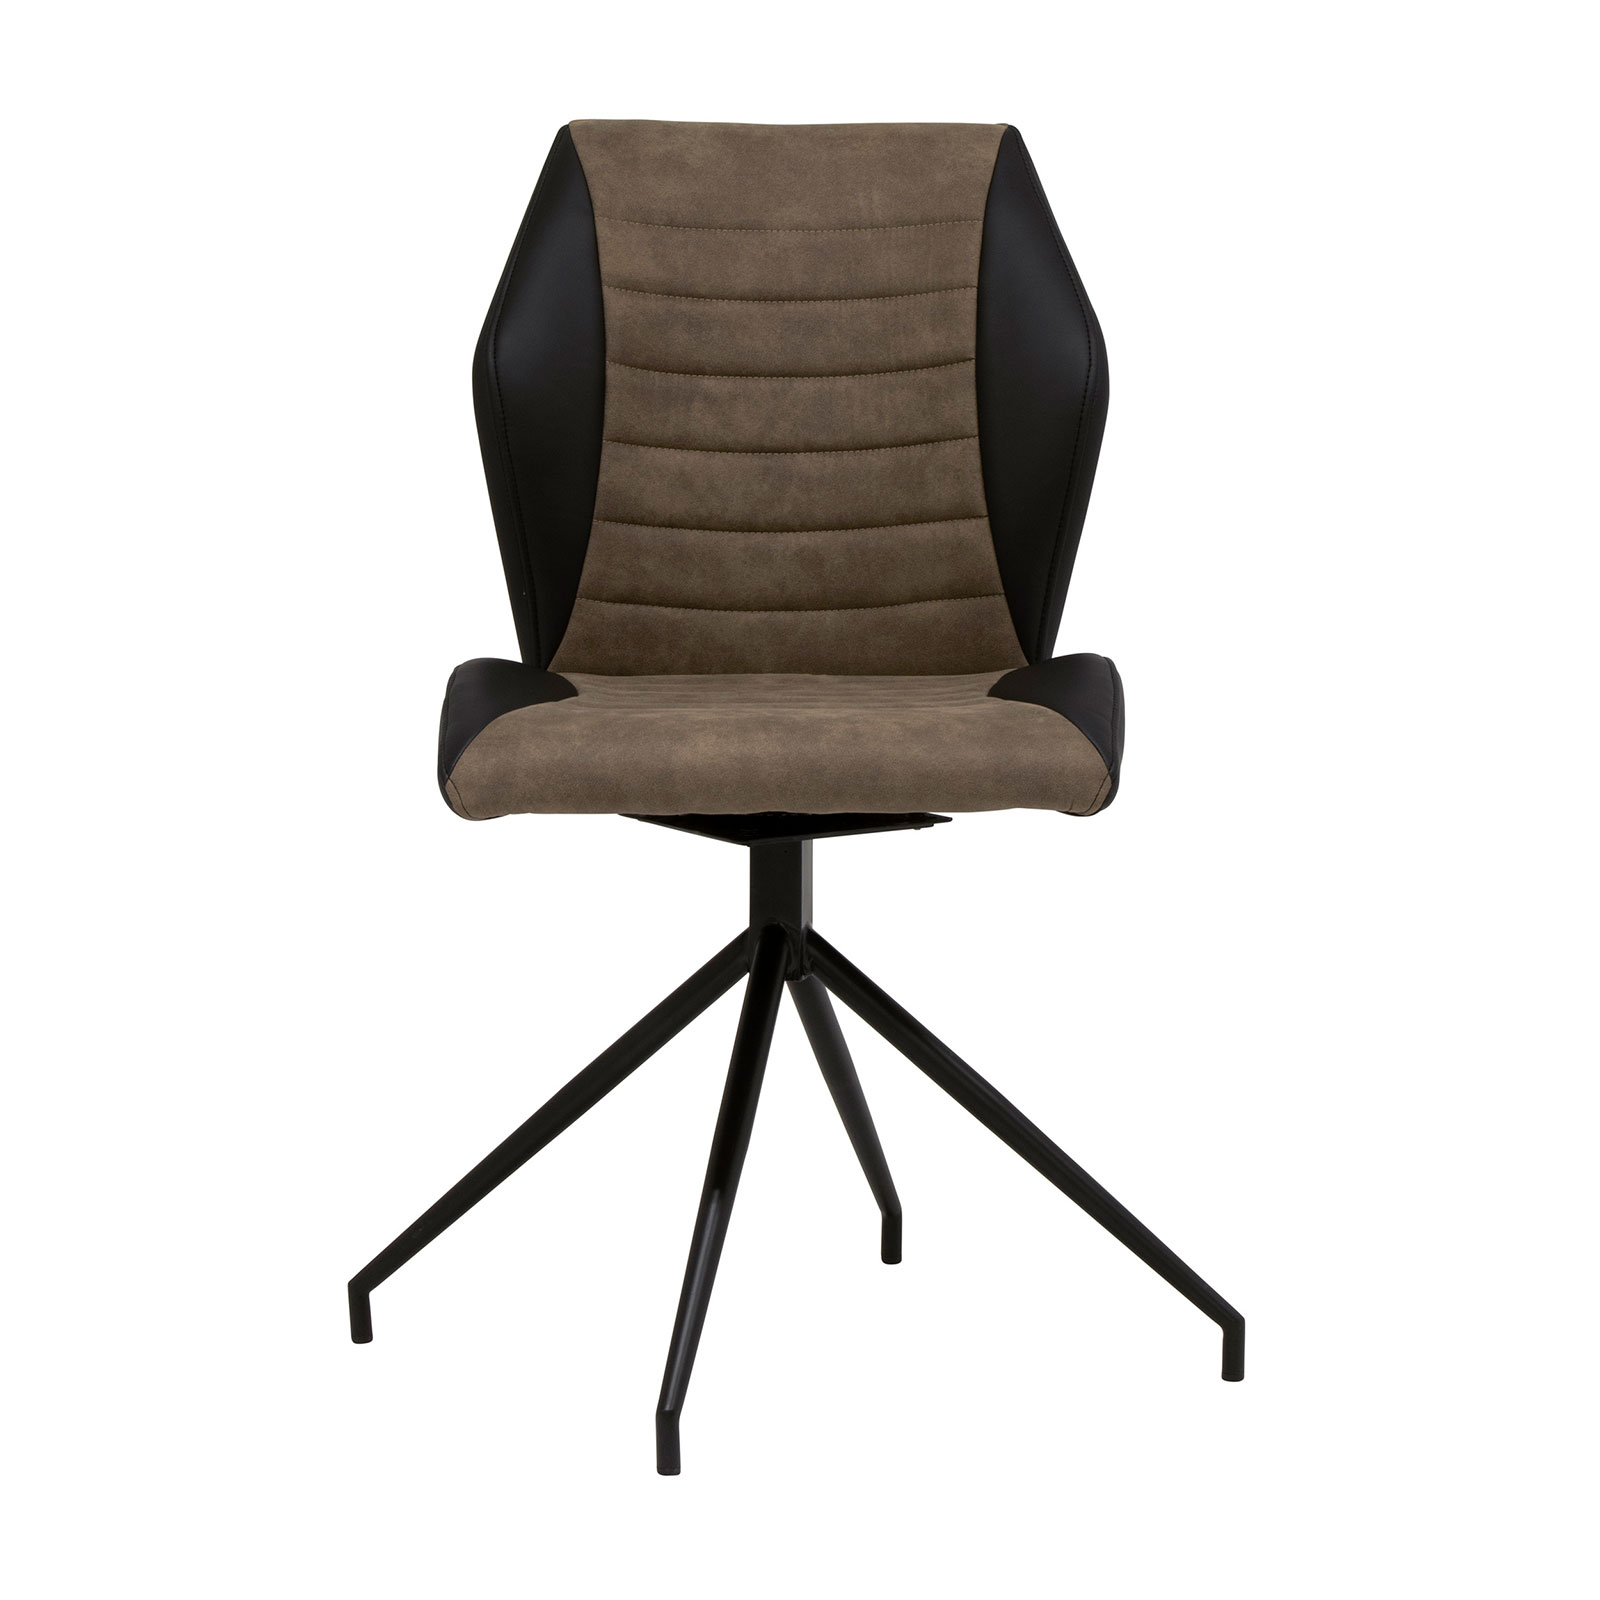 52000-Gladstone-Office-Chair-front